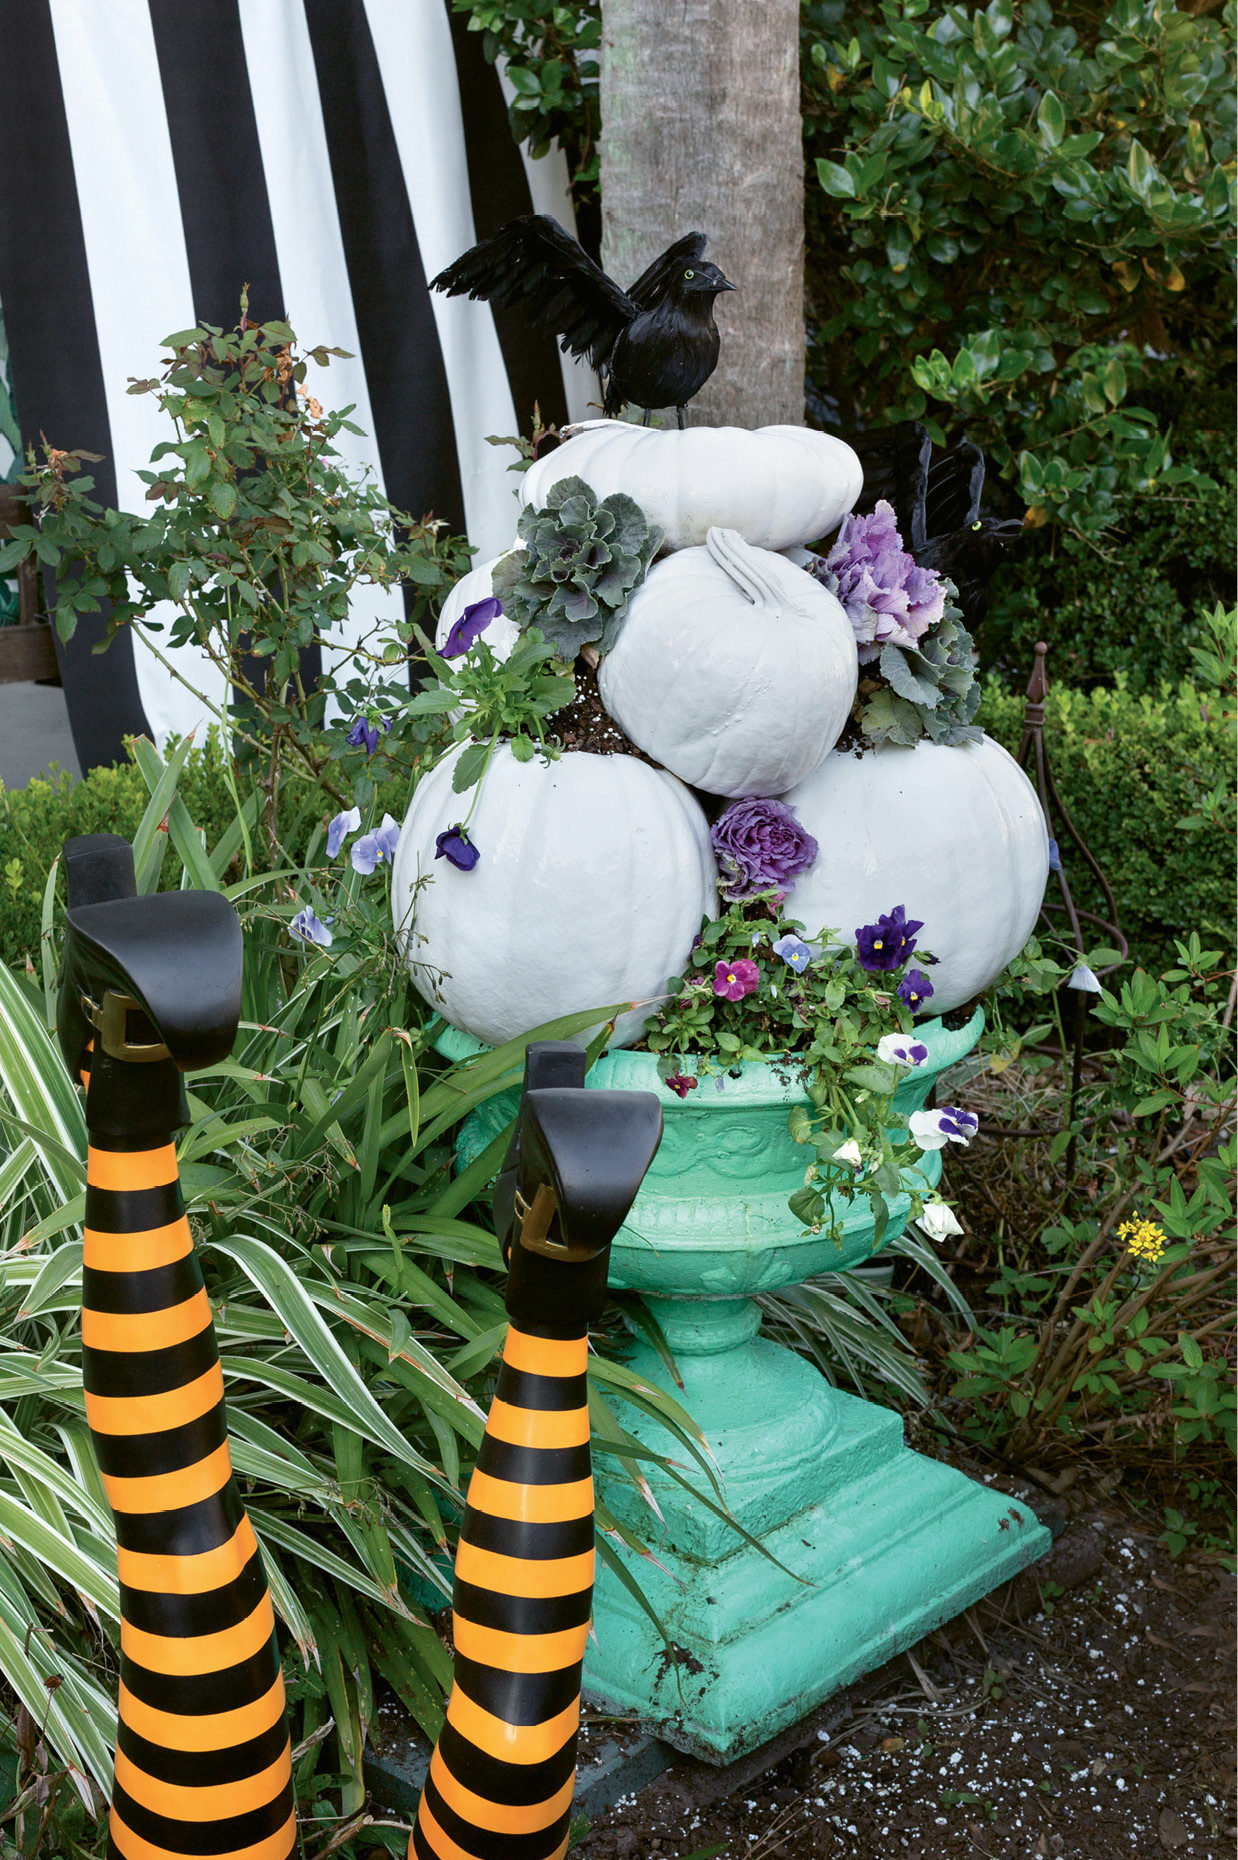 For whimsical garden decorations, fill an urn with potting soil, then balance pumpkins and gourds atop one another, filling the spaces between with more earth.